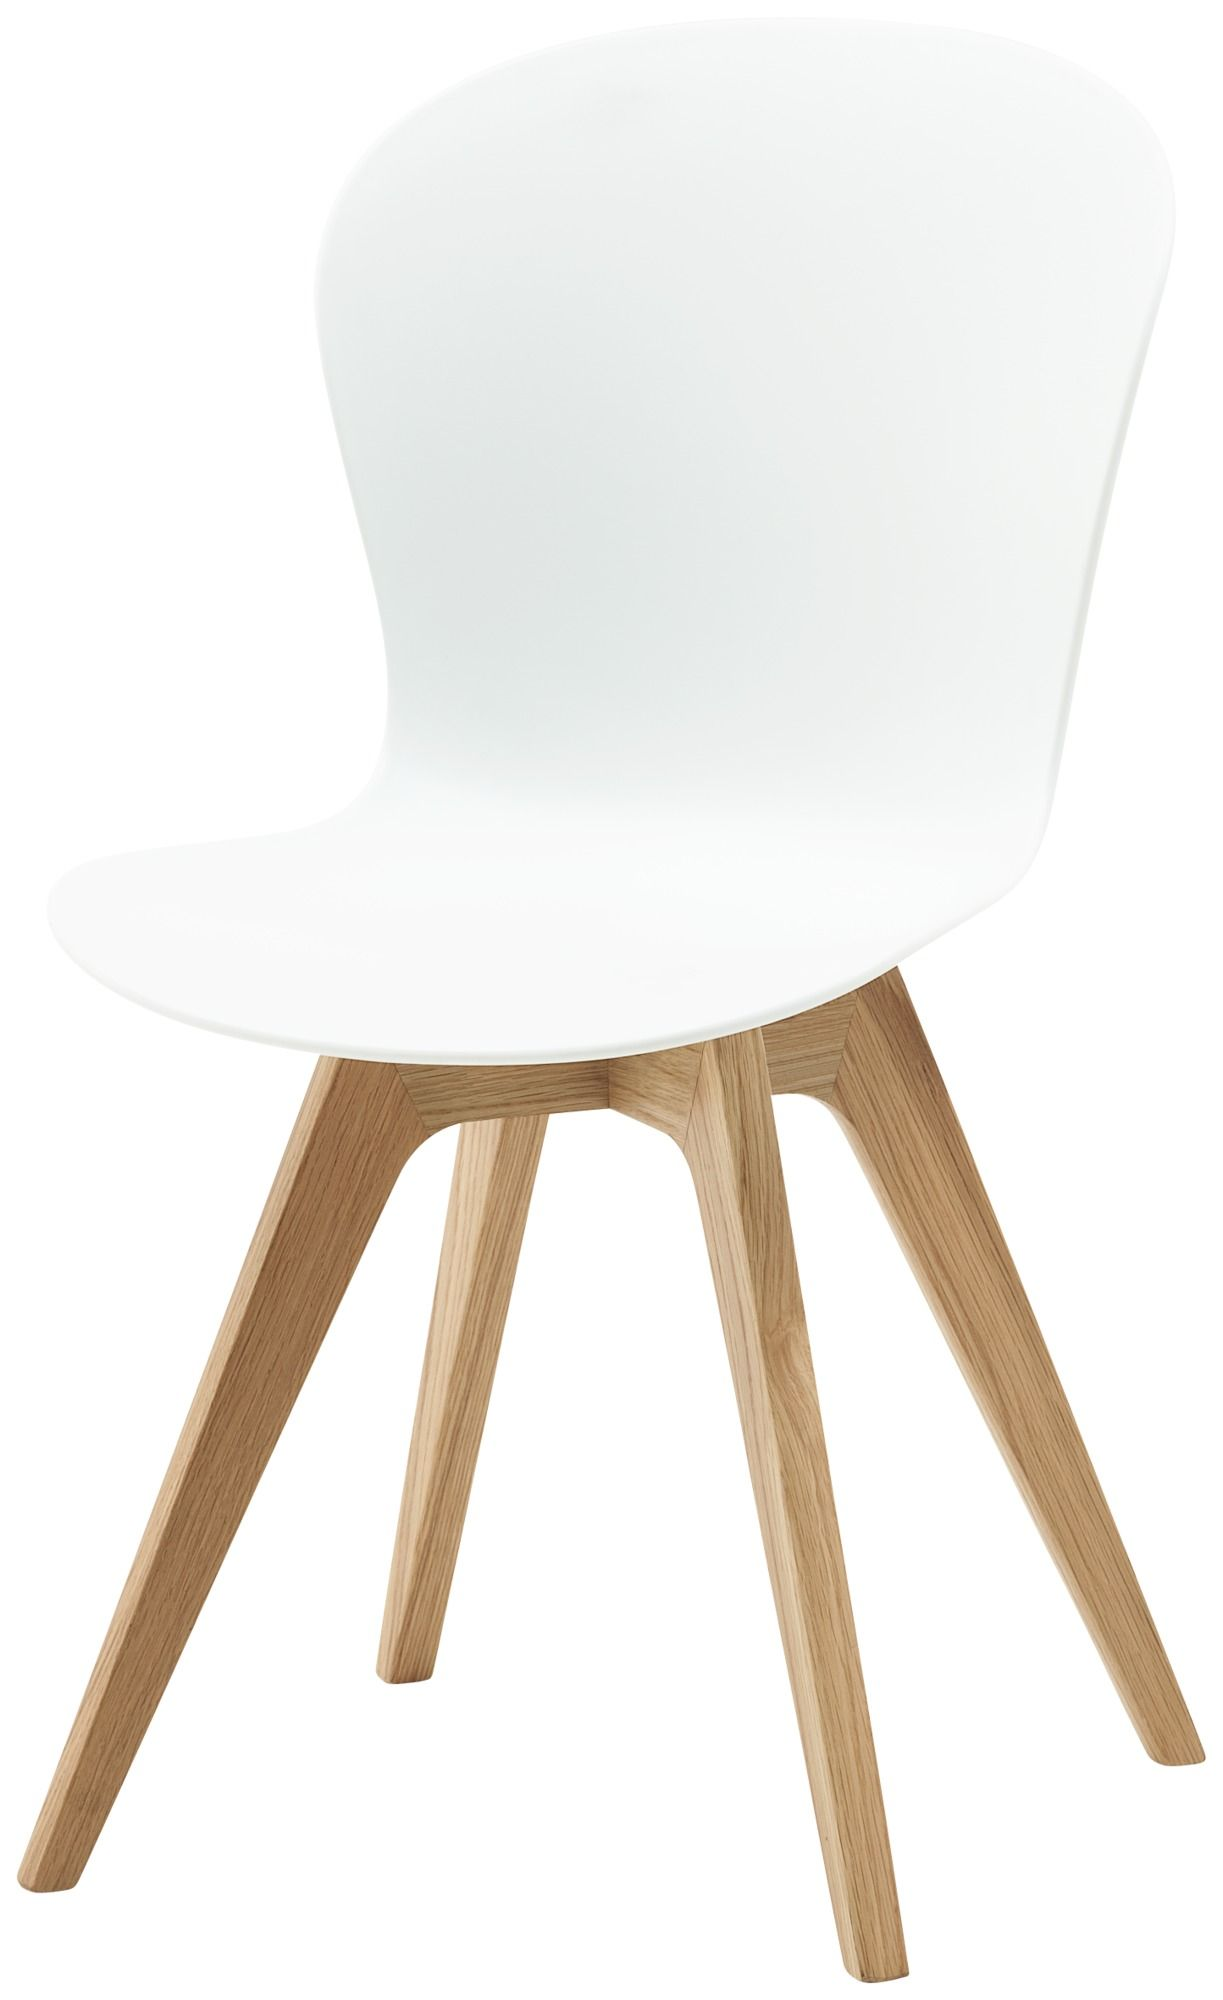 modern dining chairs contemporary dining chairs boconcept - Boconcept Esstisch